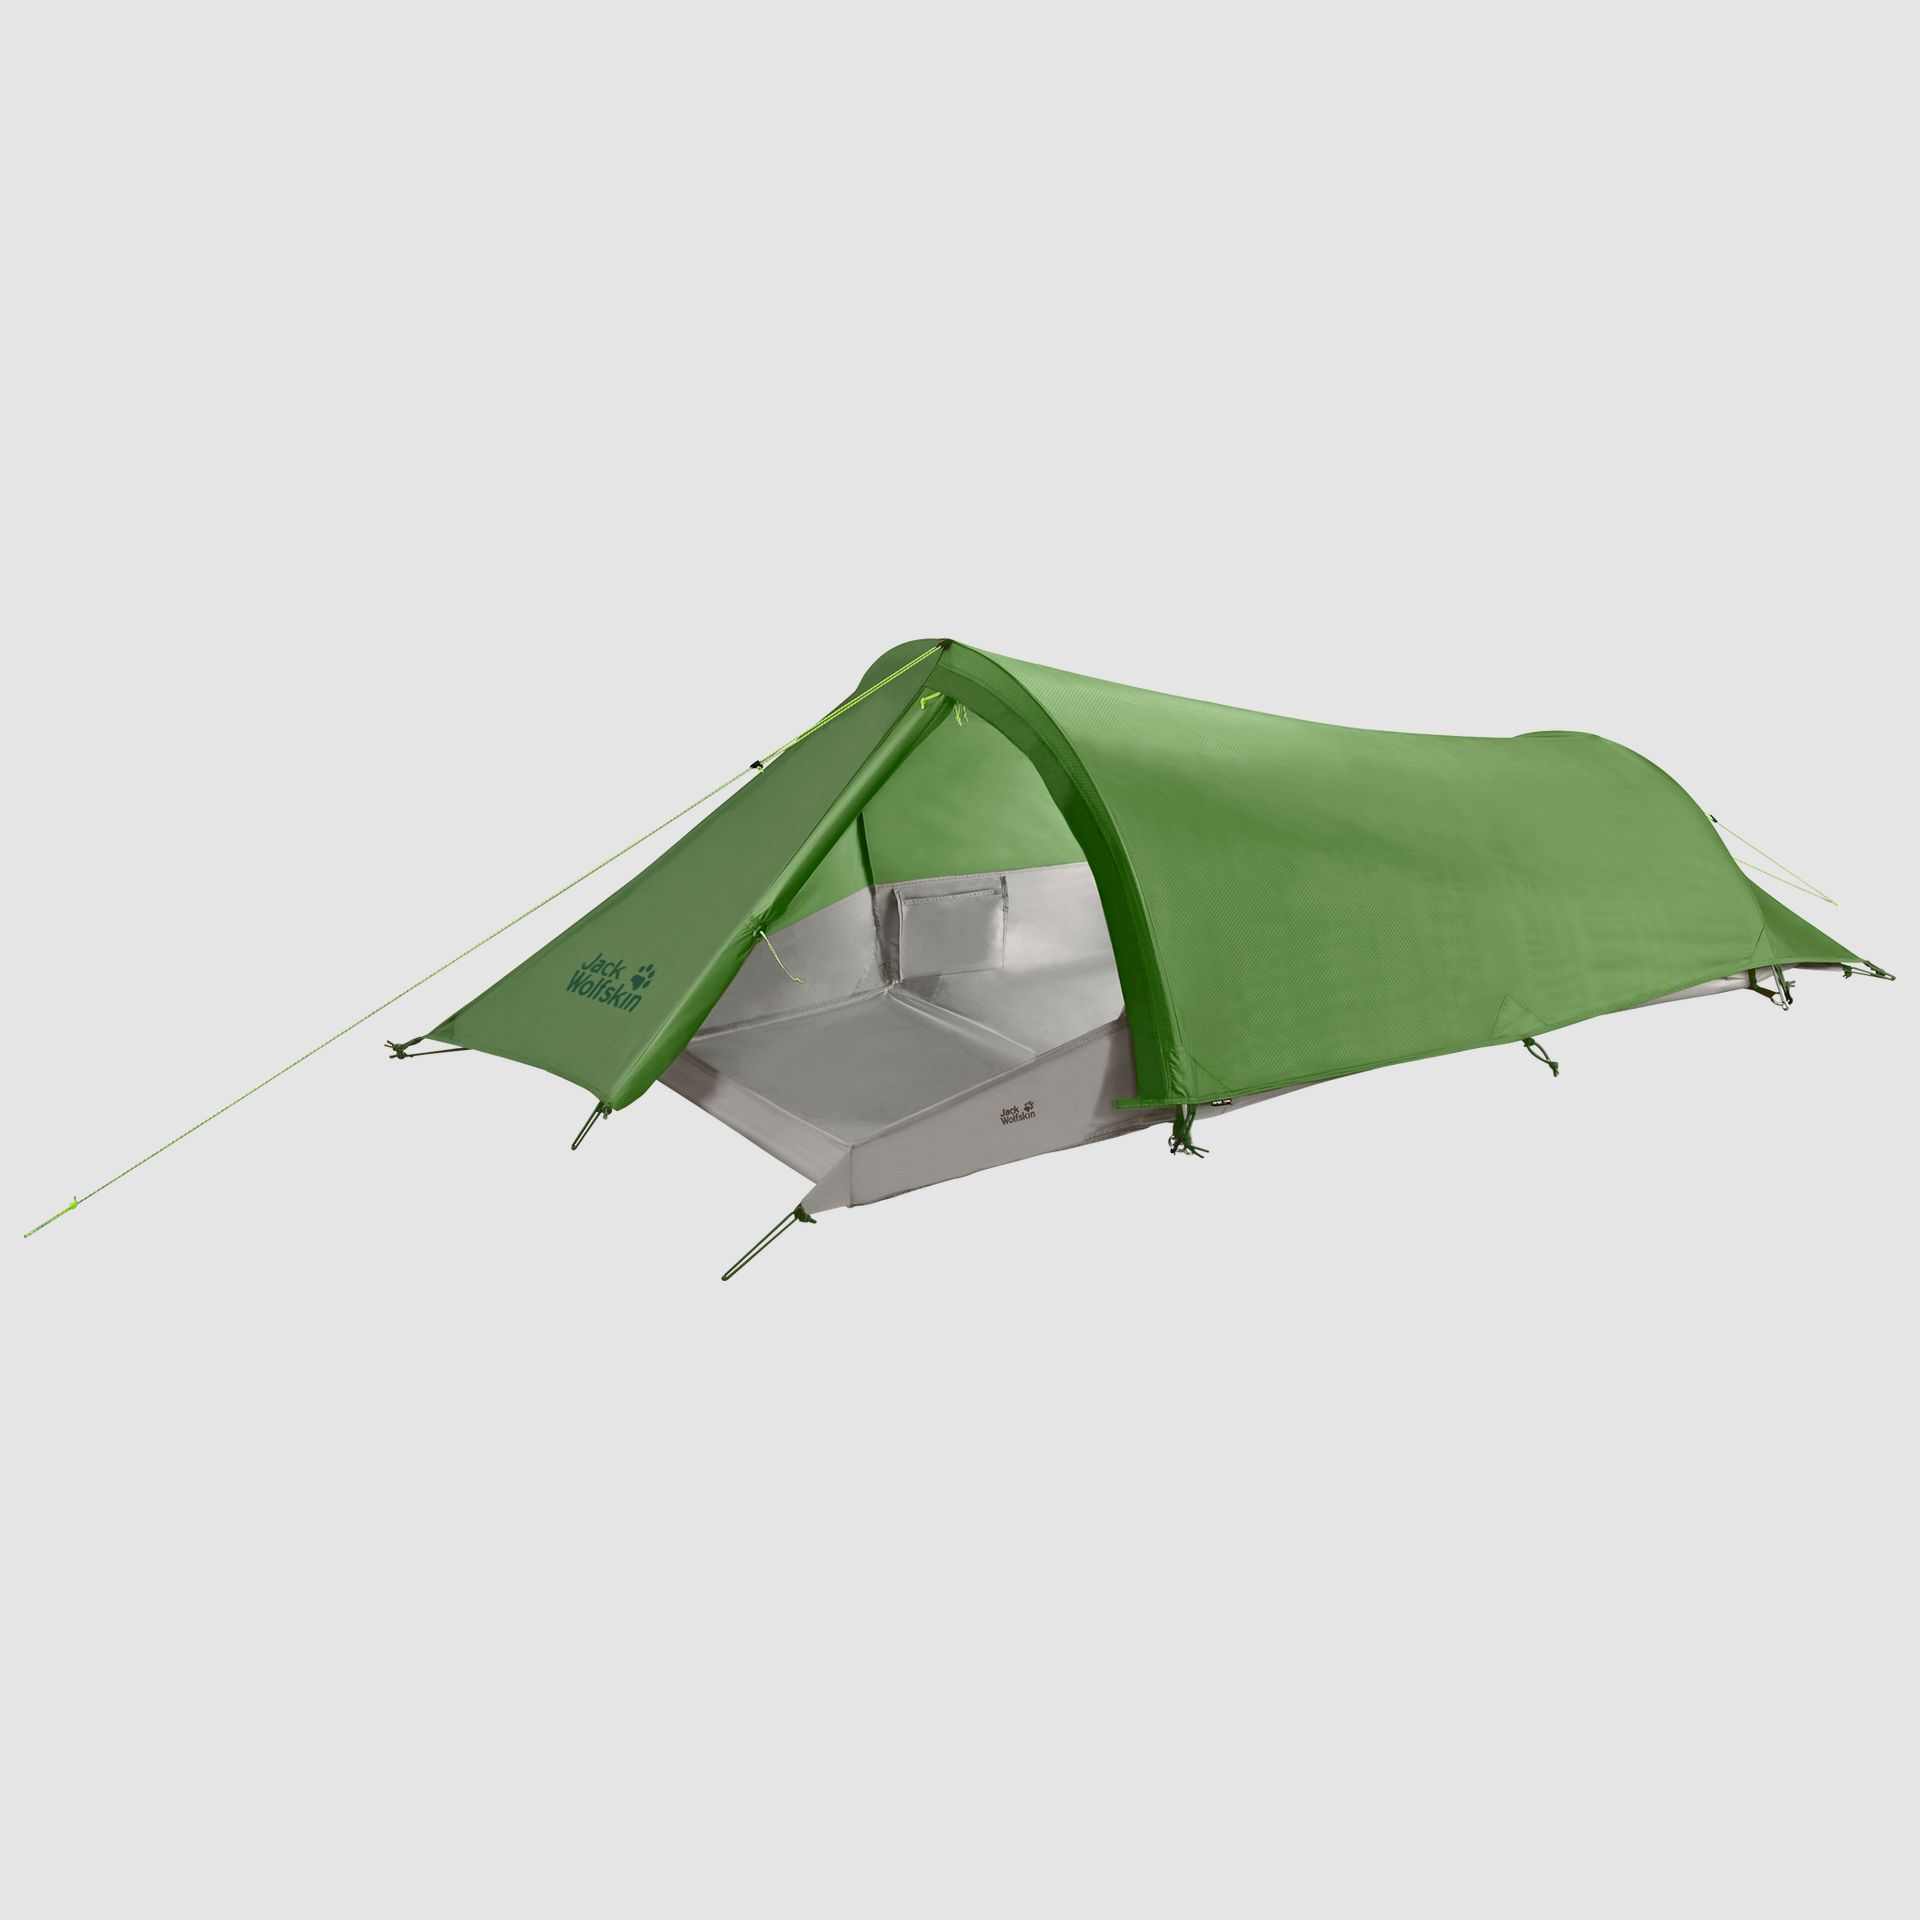 Jack Wolfskin Gossamer 1 Person Tent Catcus Green